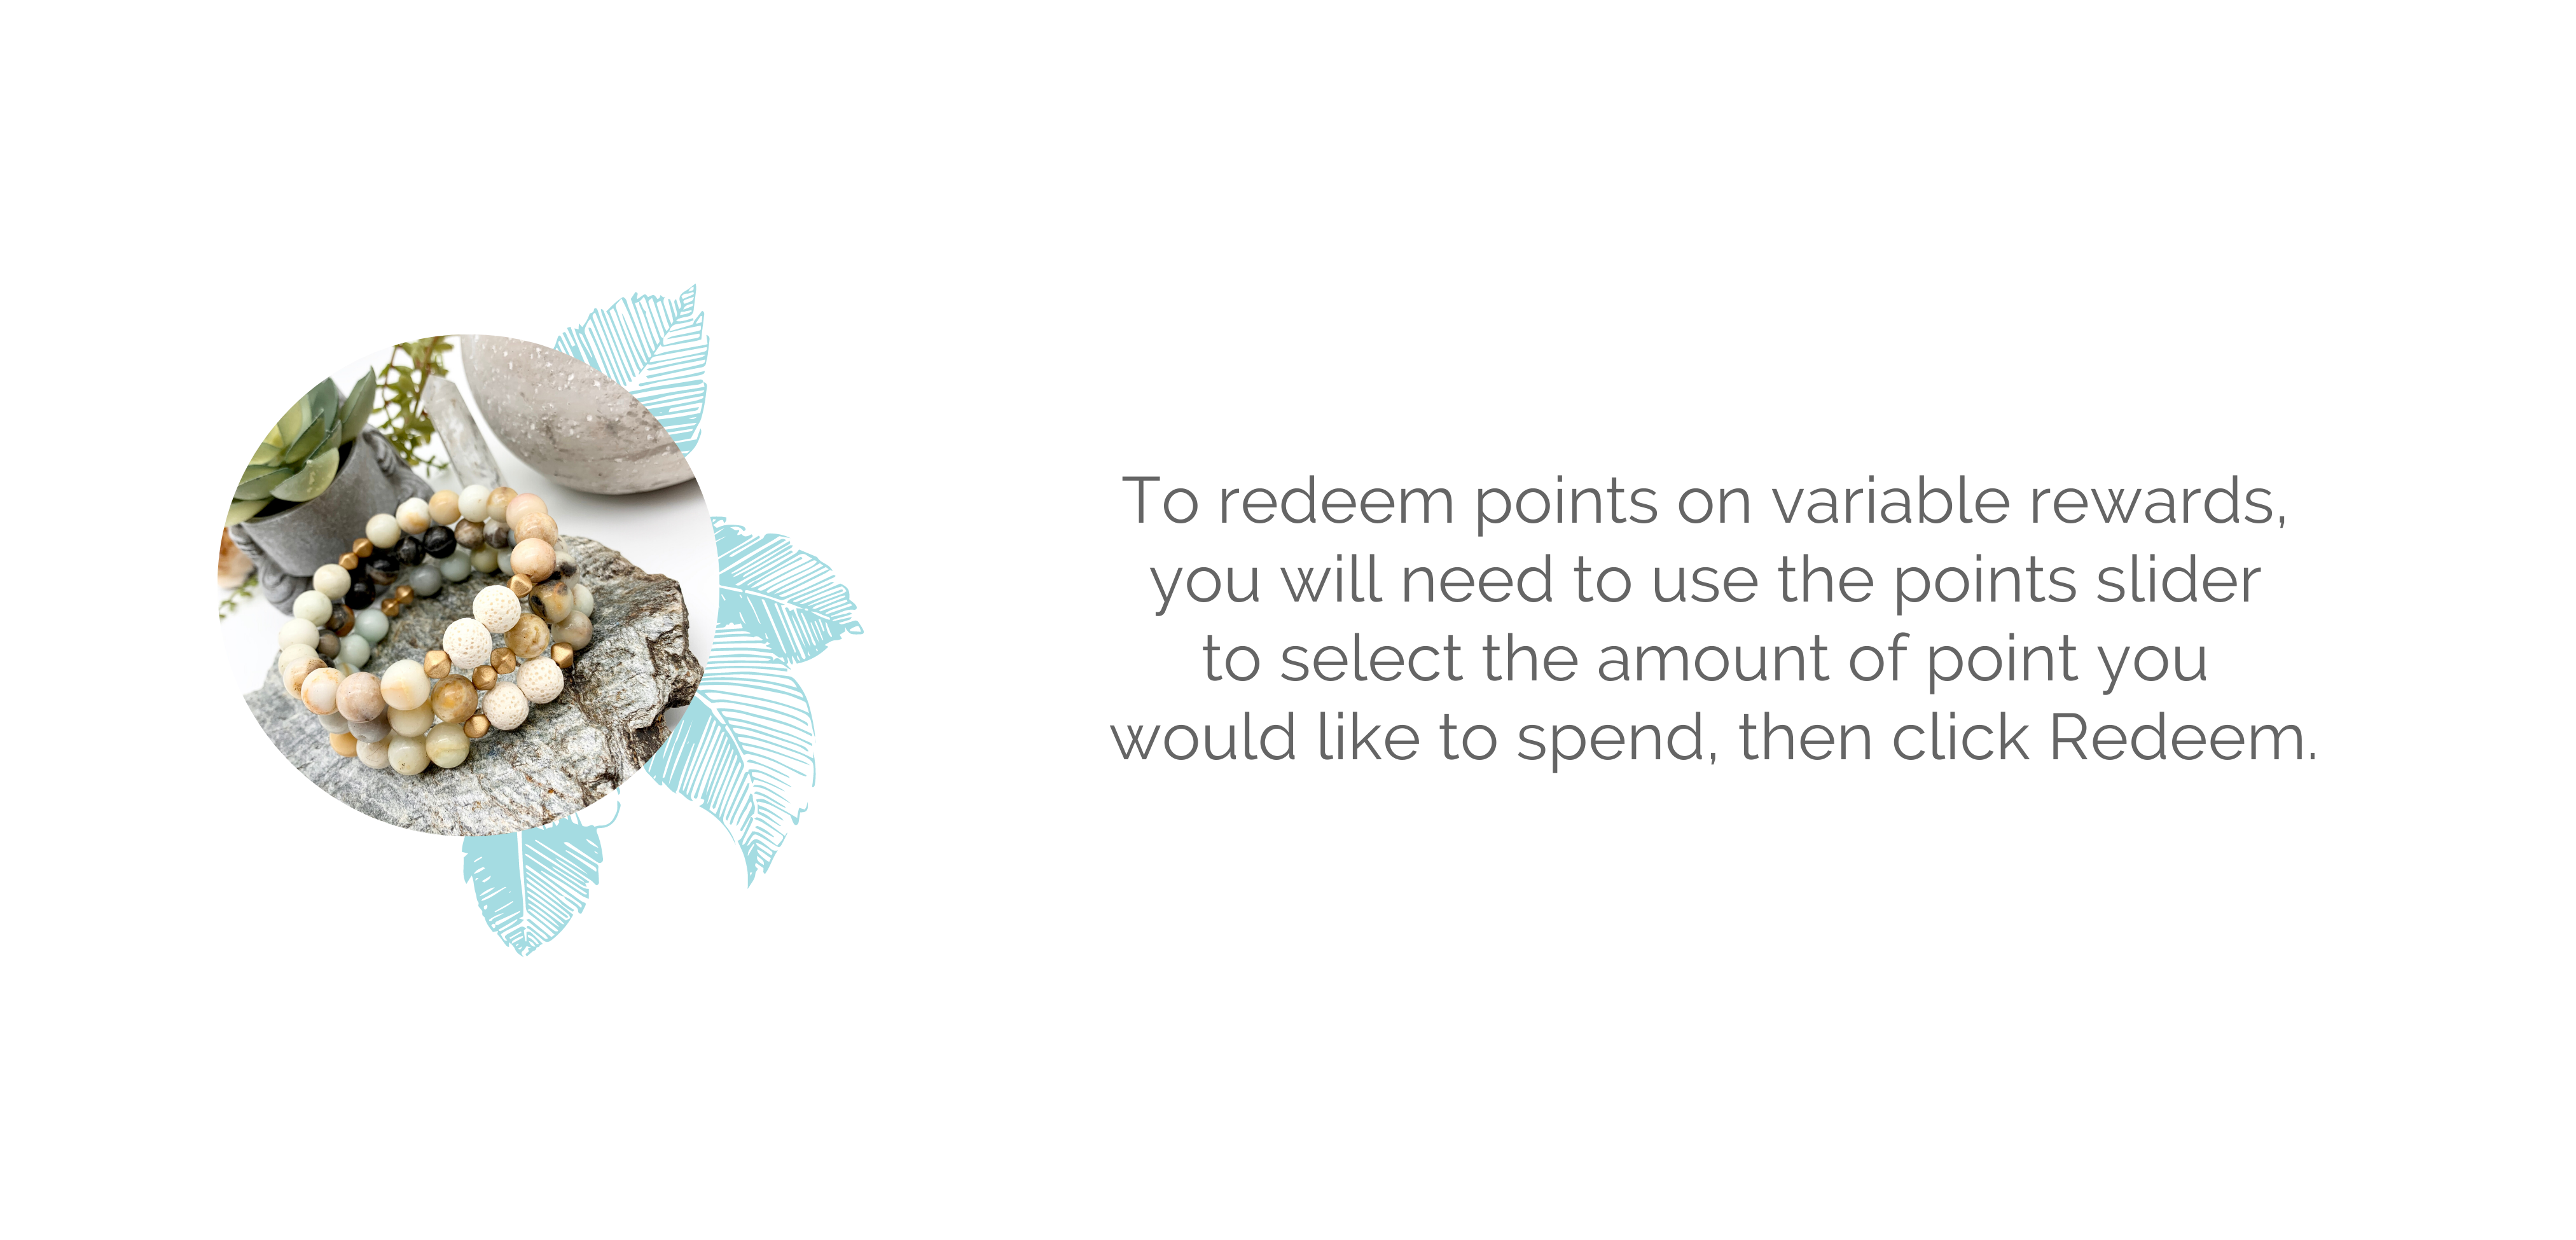 Vib and Sol Designs Rewards Program How To Redeem Points